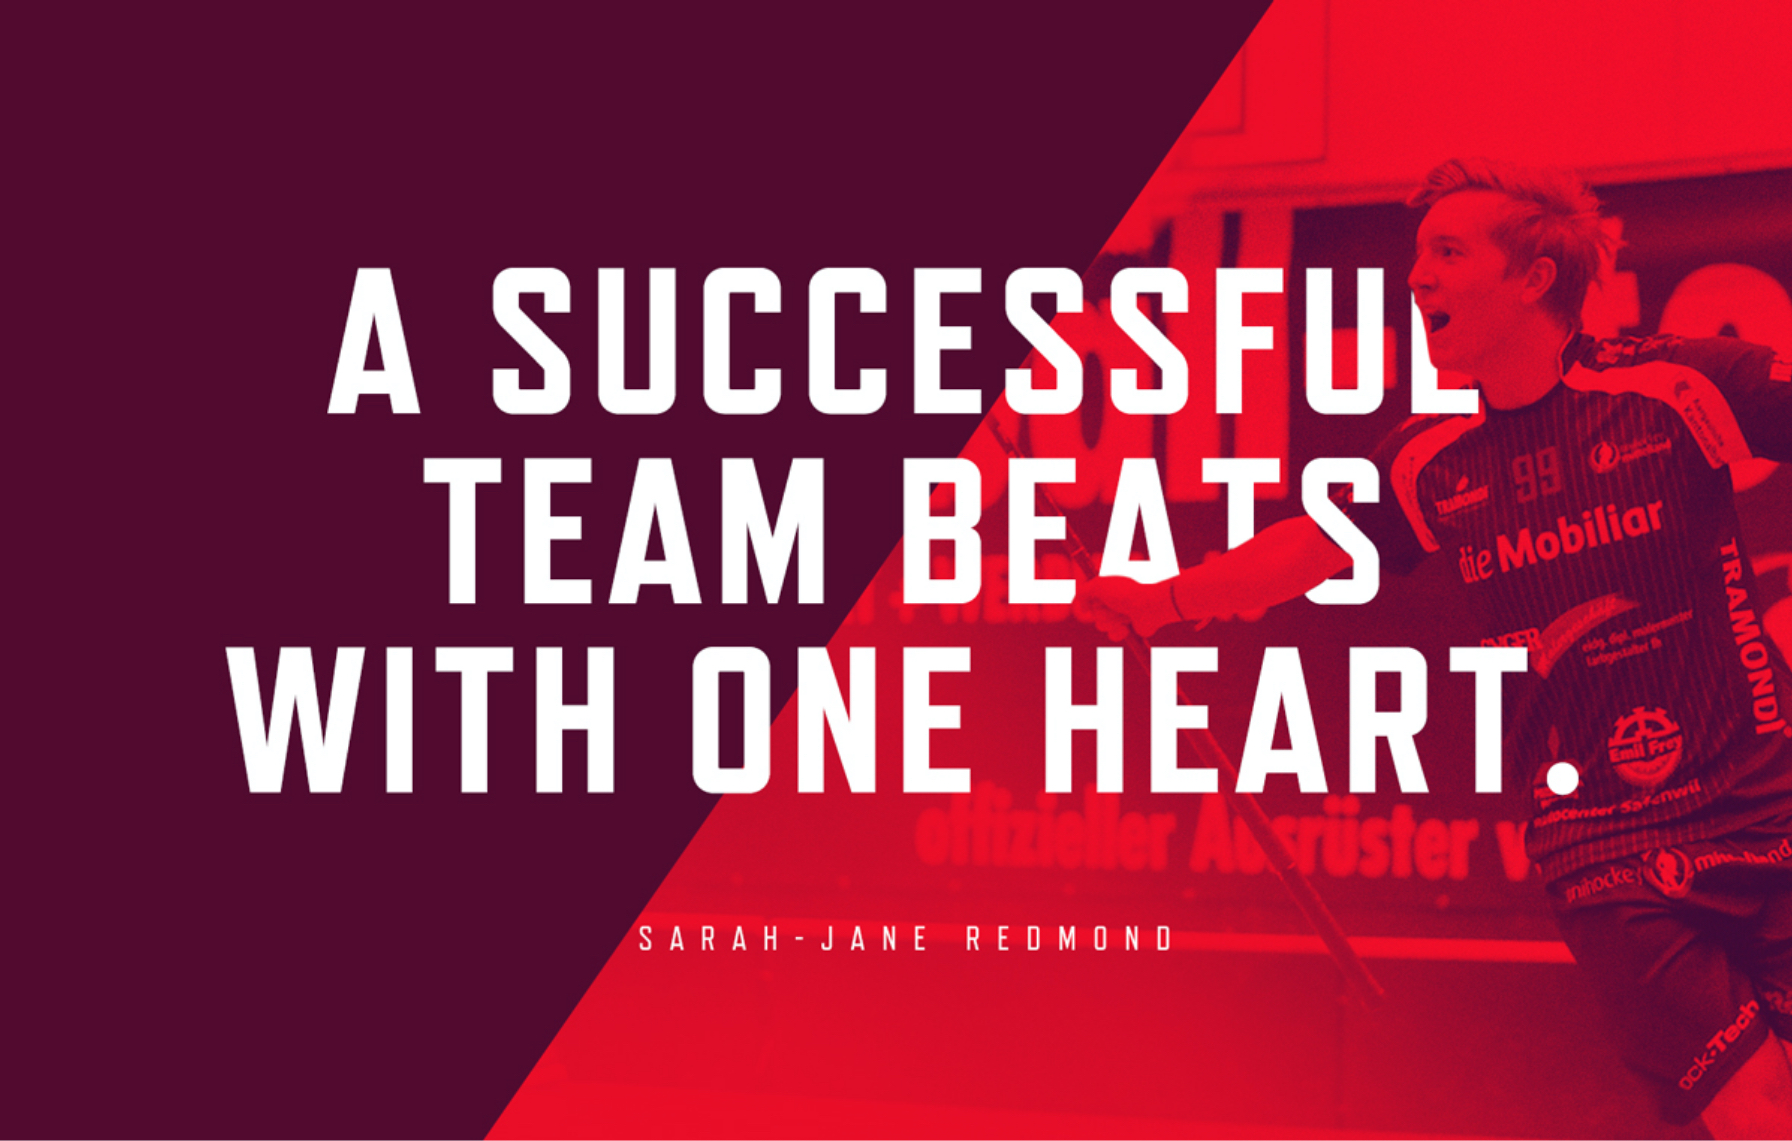 A Succesfull team beats with one heart